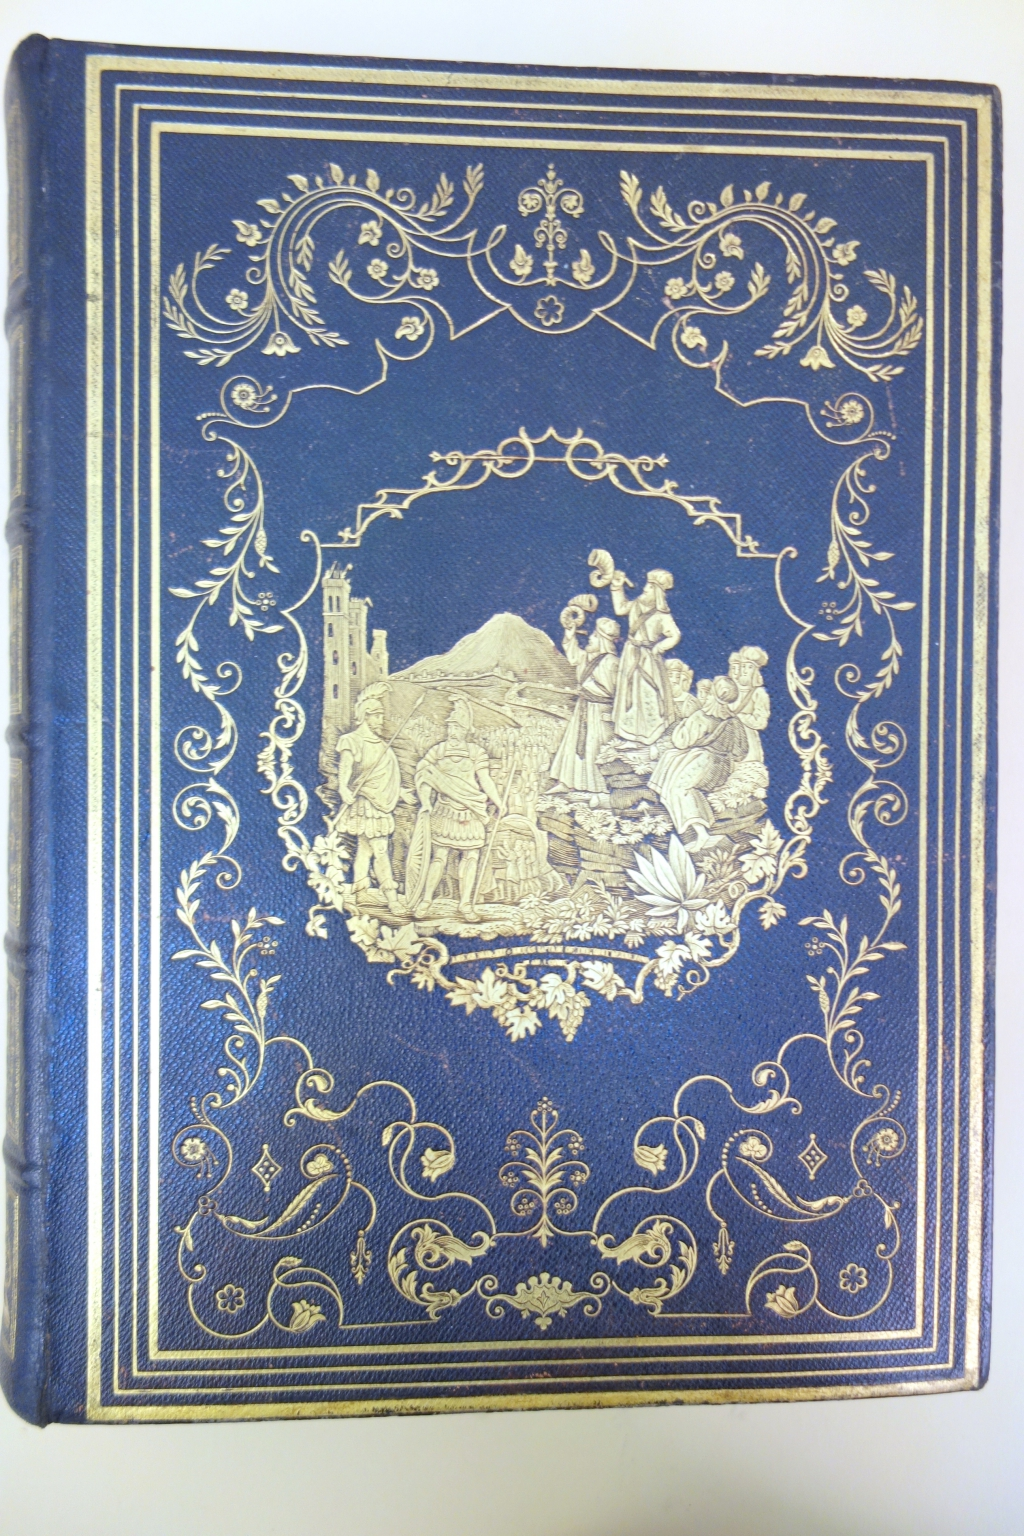 One of the more elaborate American bindings of the period done for this large volume.